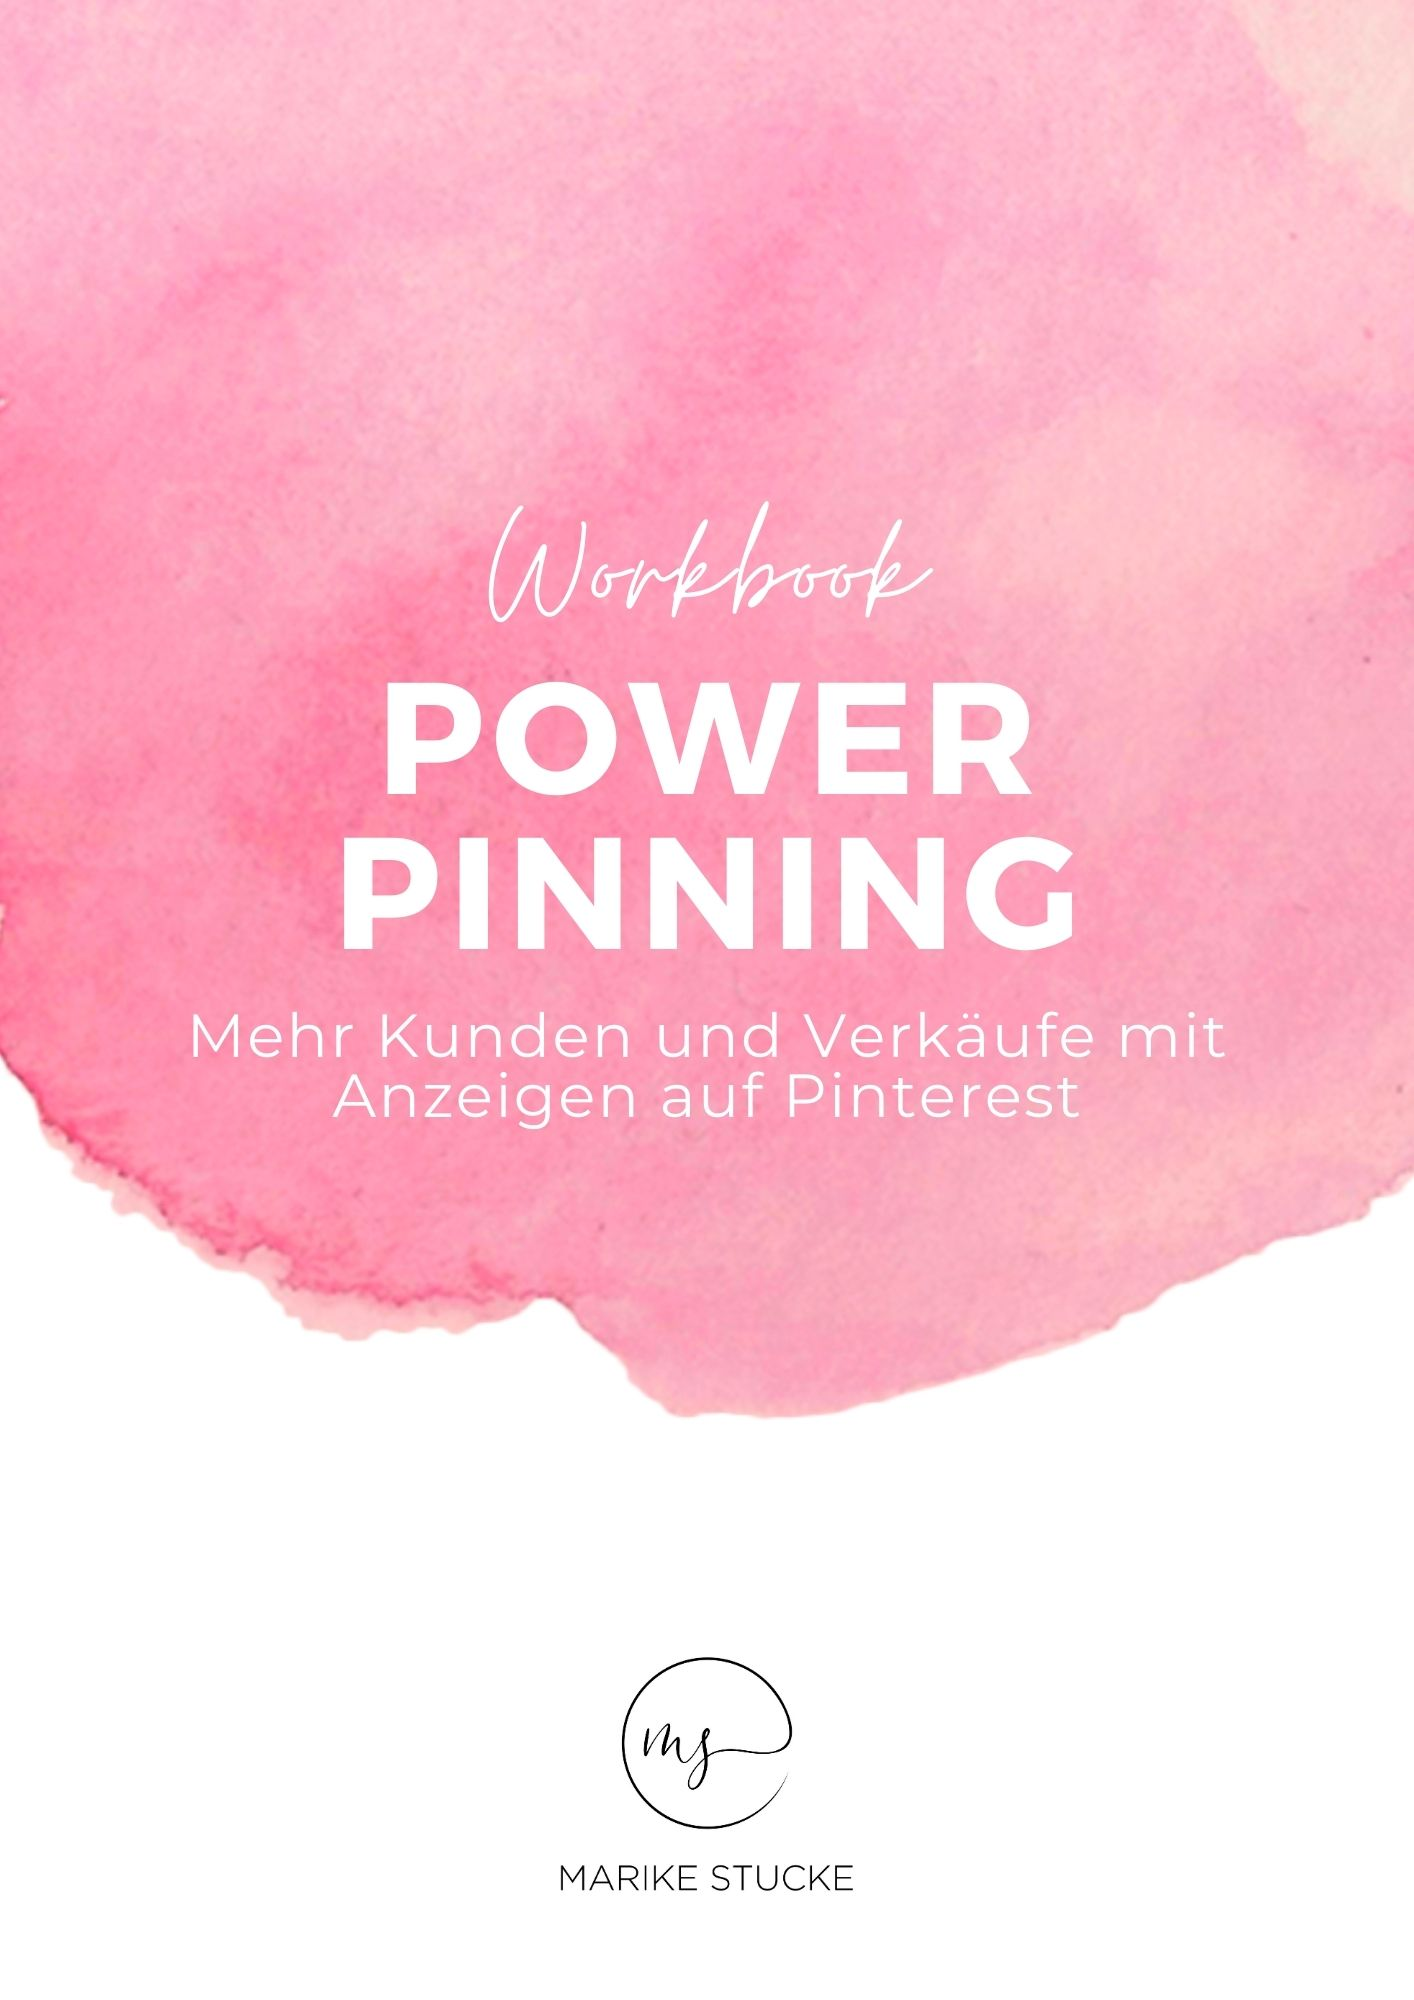 Power Pinning Workbook